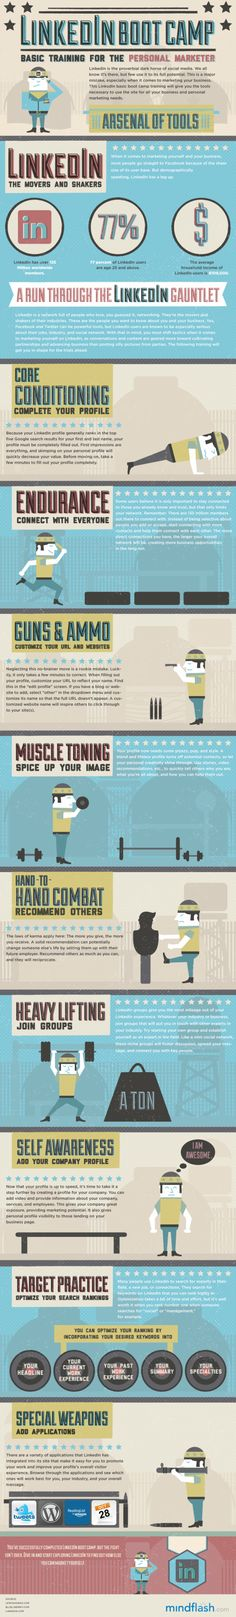 Basic Training for the Personal Marketer on LikedIn #infographic